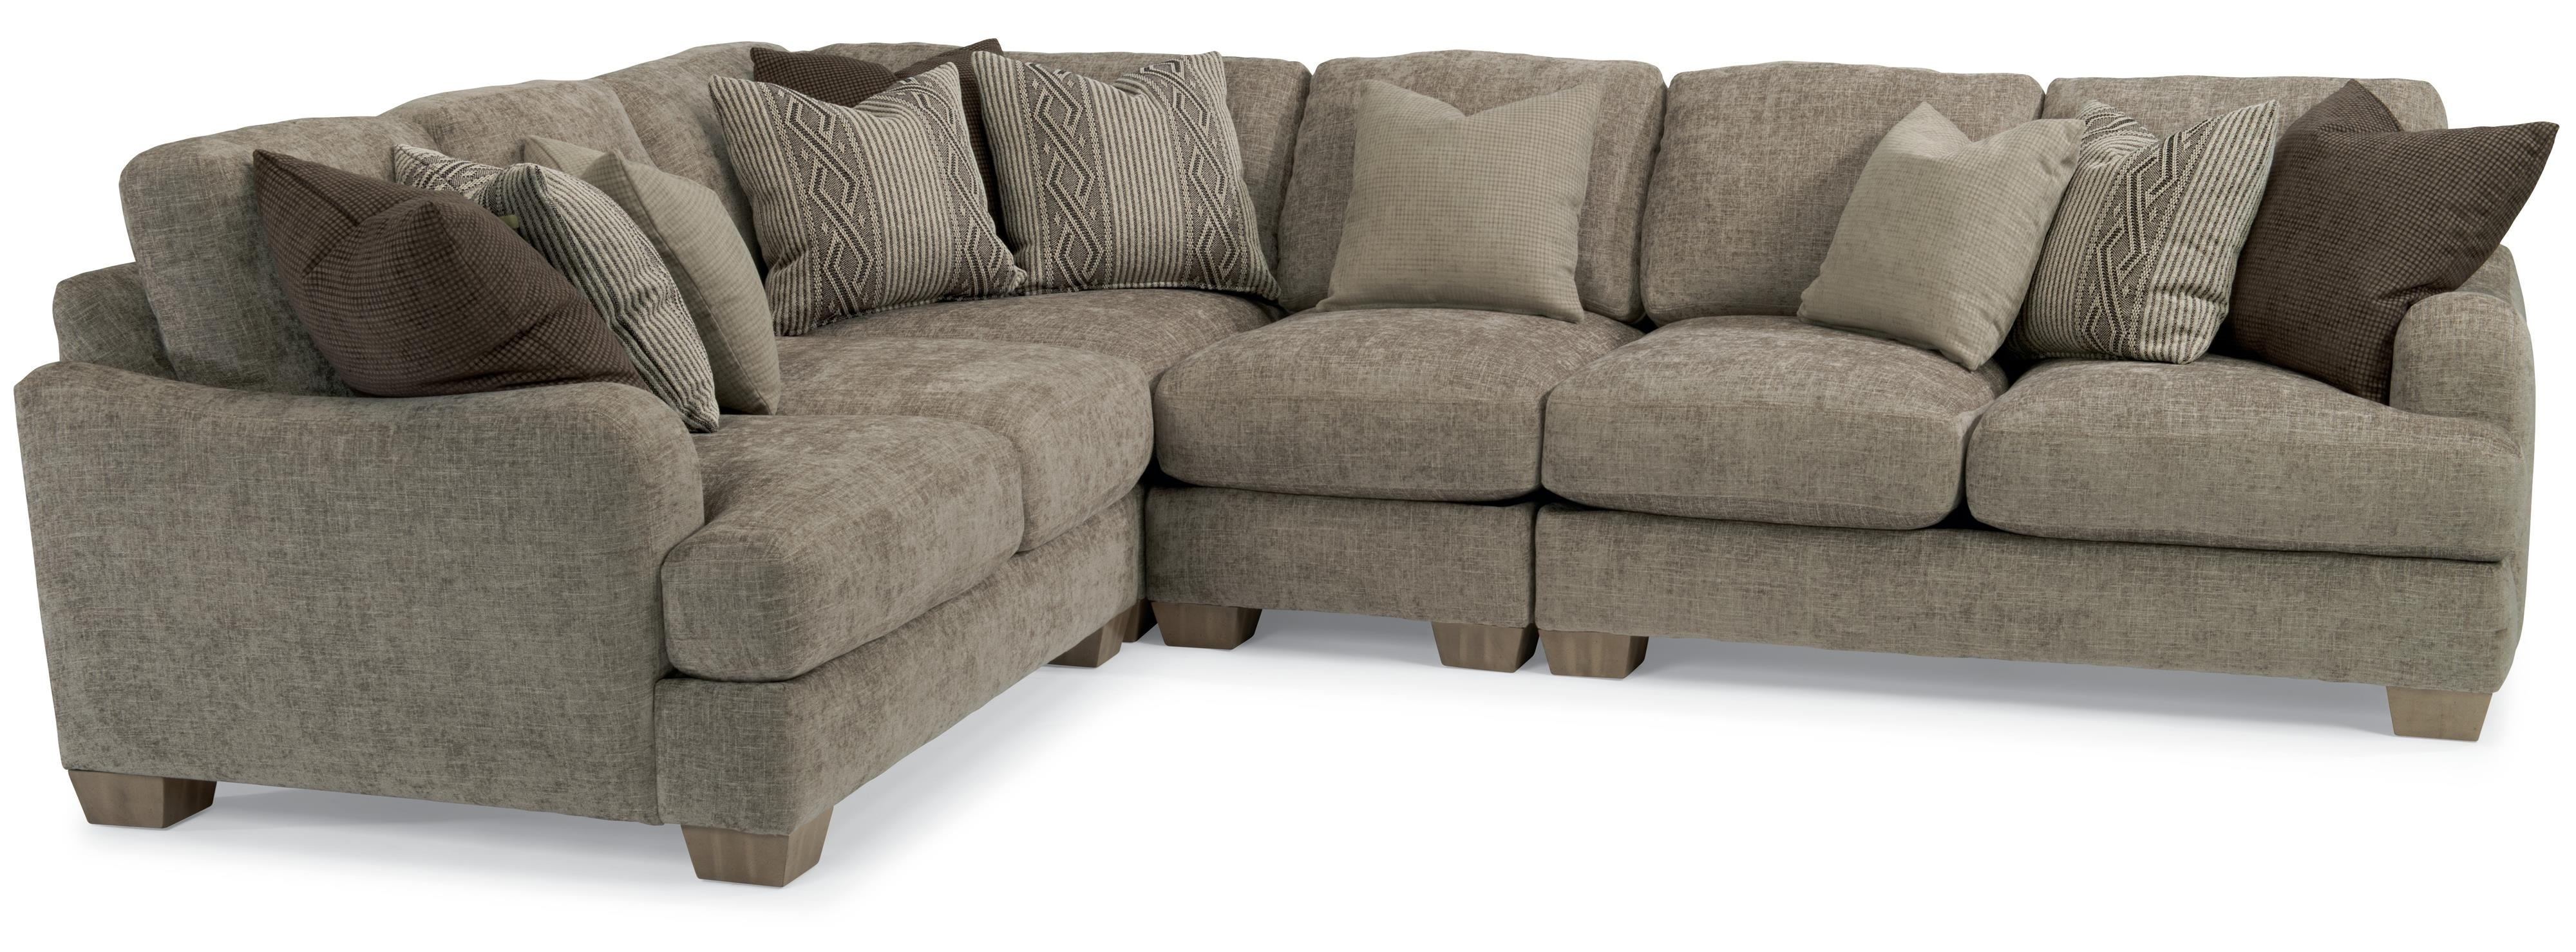 Vanessa Sectional Sofa With Loose Pillow Backflexsteel | Living With Regard To New Orleans Sectional Sofas (View 7 of 10)